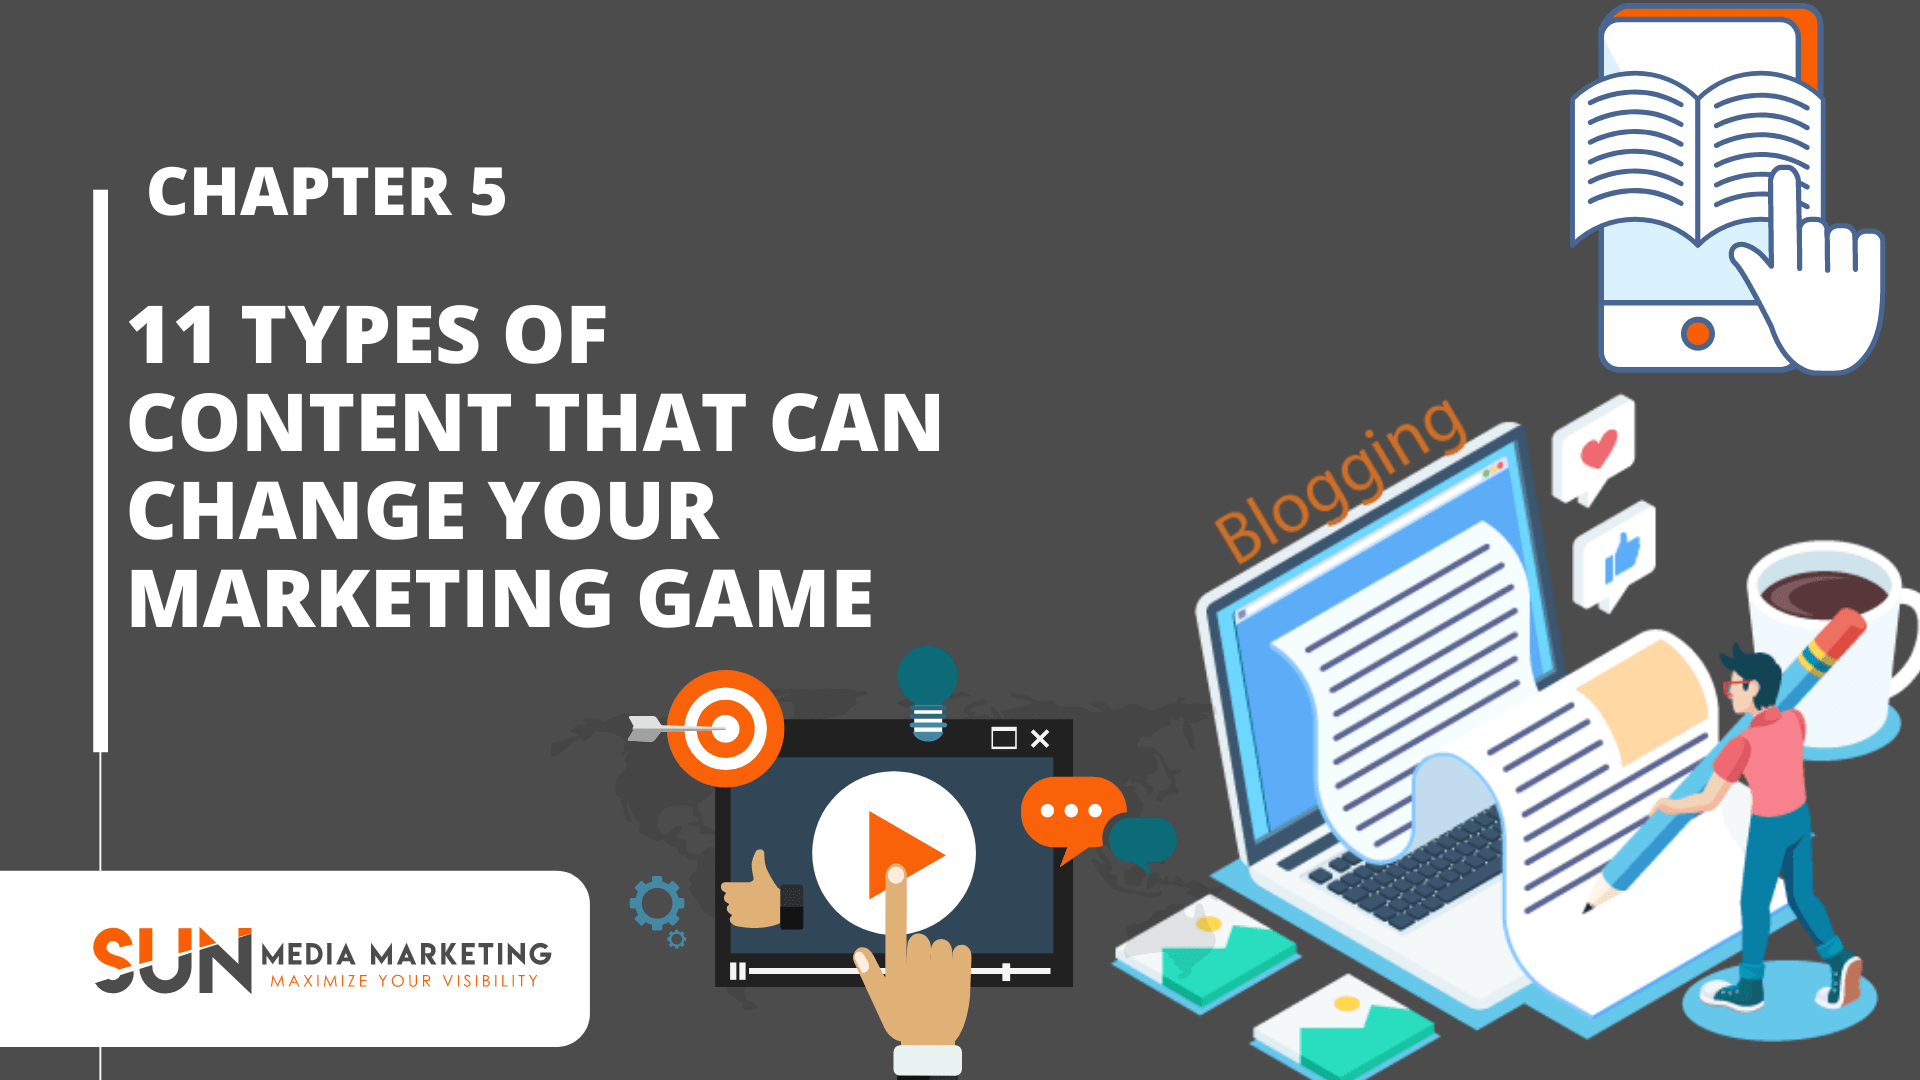 11 Types of Content that can change your marketing game